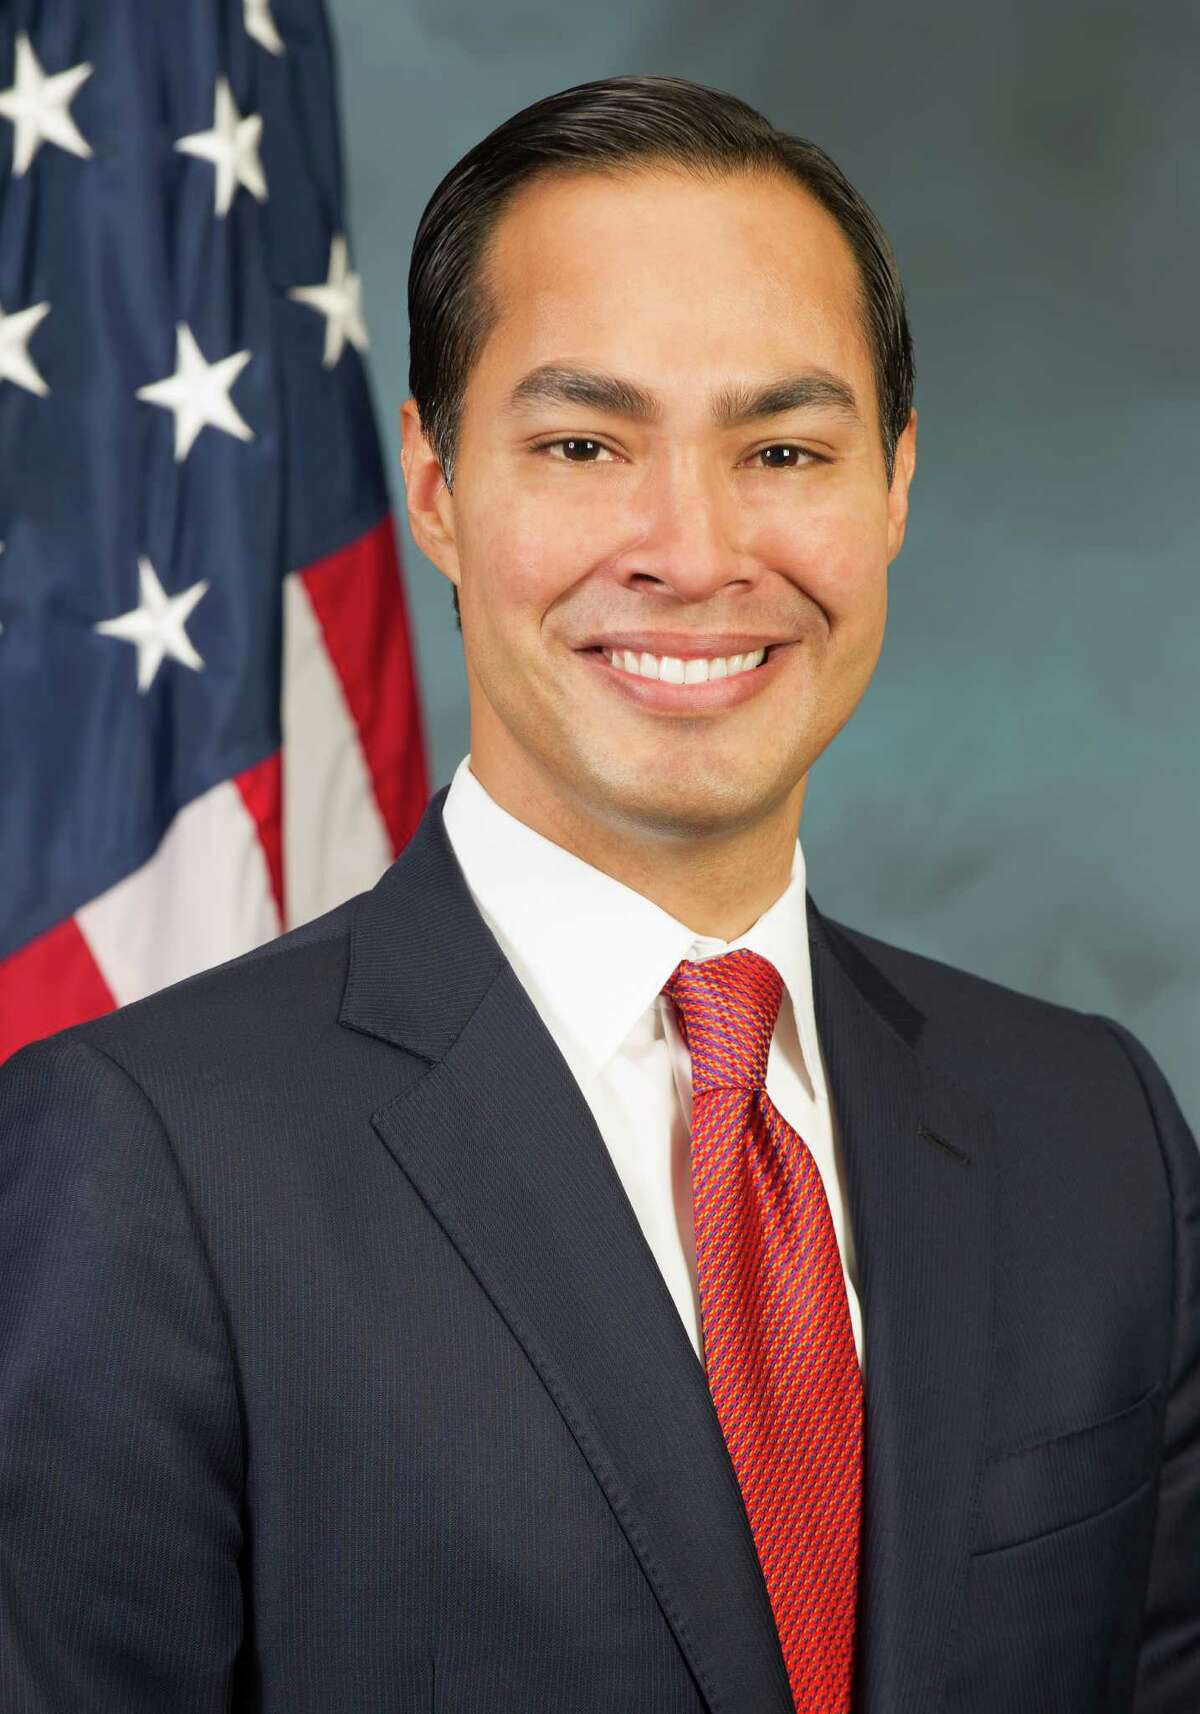 Julián Castro is seen Monday July 28, 2014 in his first official portrait as the Housing and Urban Development Secretary.